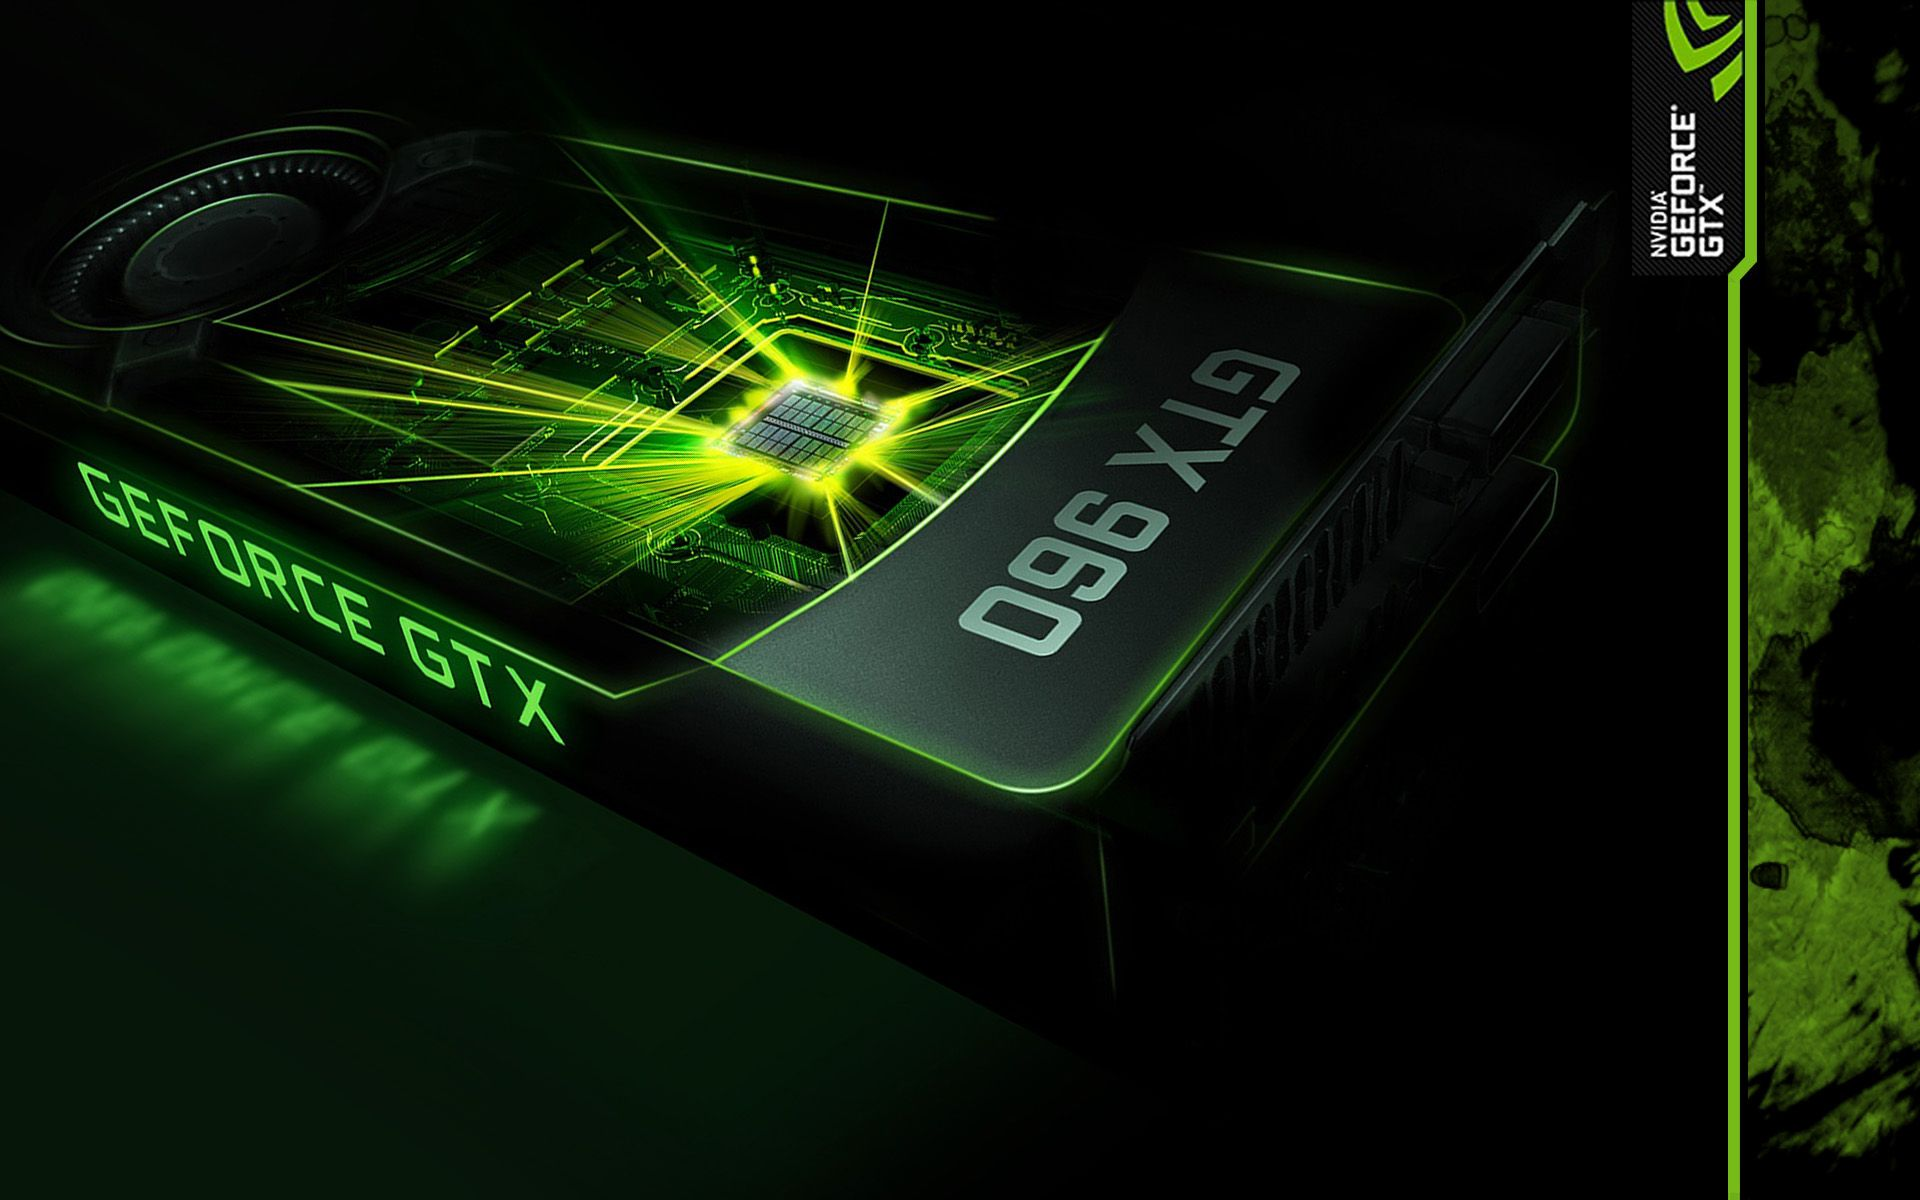 nvidia geforce gtx graphics card wallpaper hd wallpaper in 2018